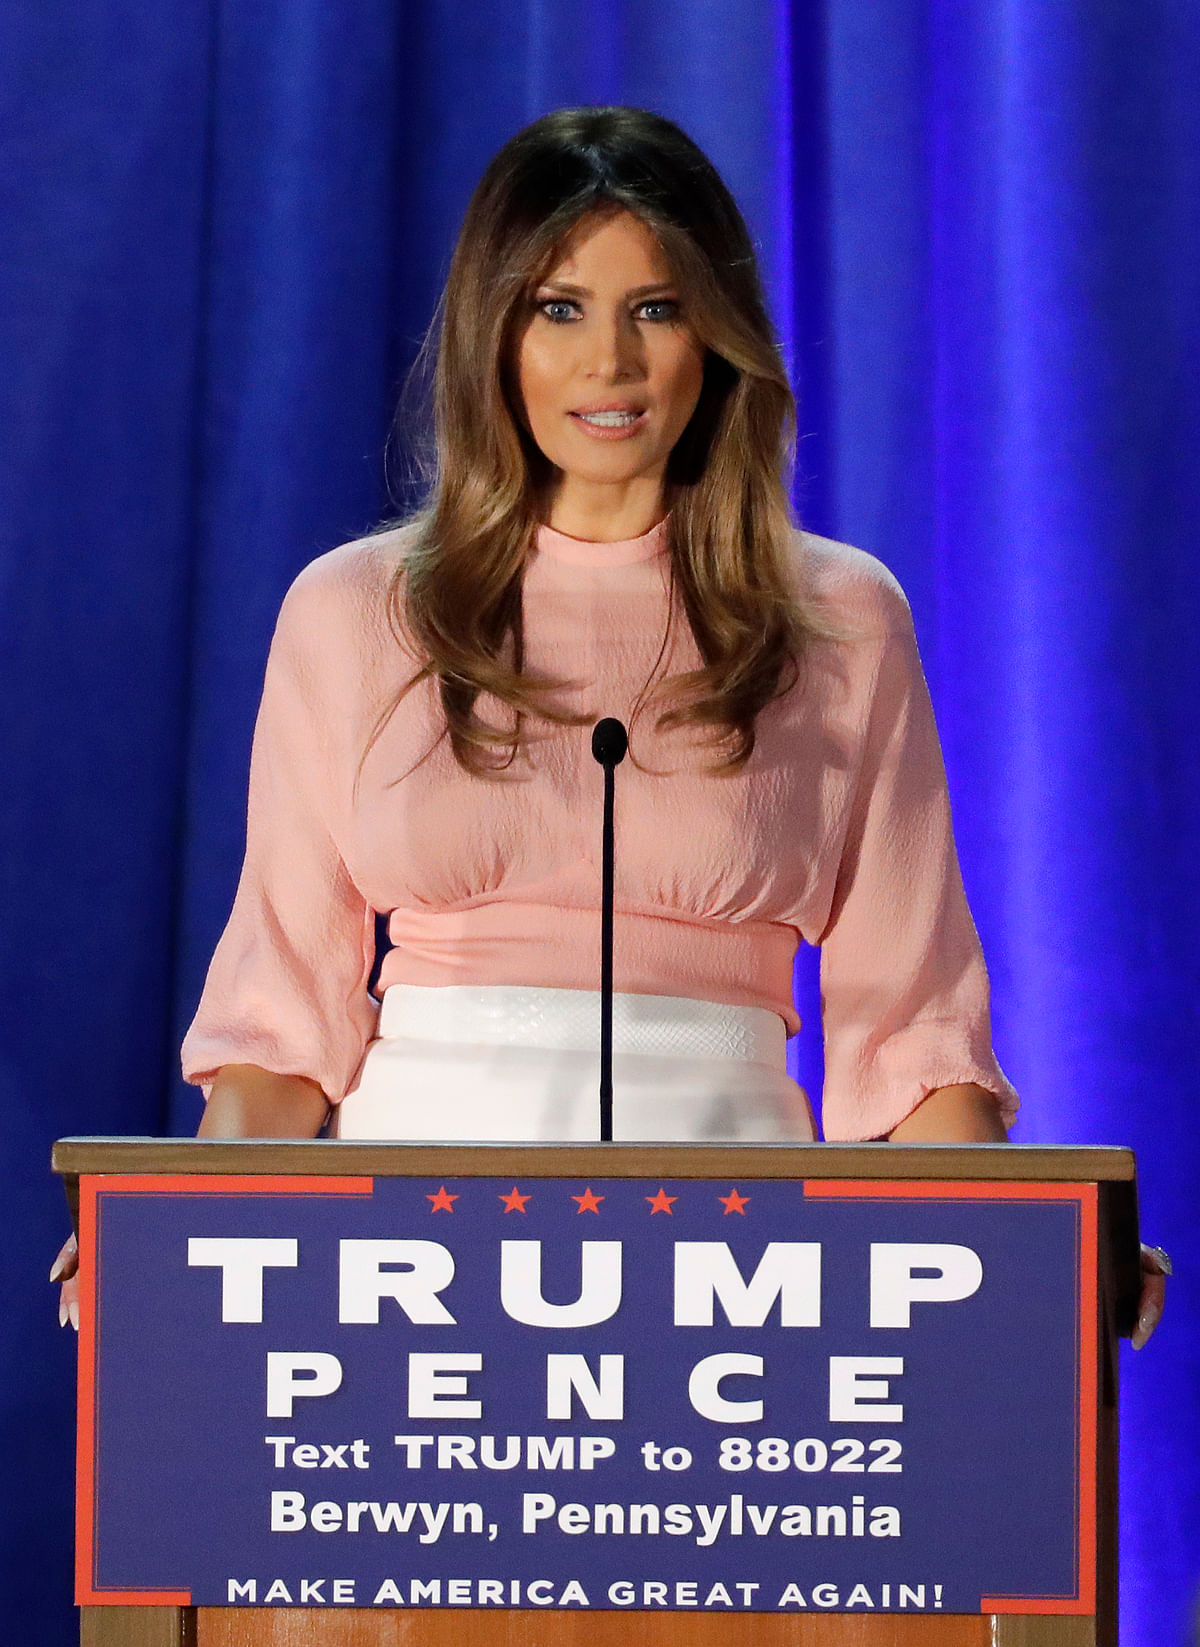 Melania Trump speaks on Thursday, 3 November 2016. (Photo: AP)